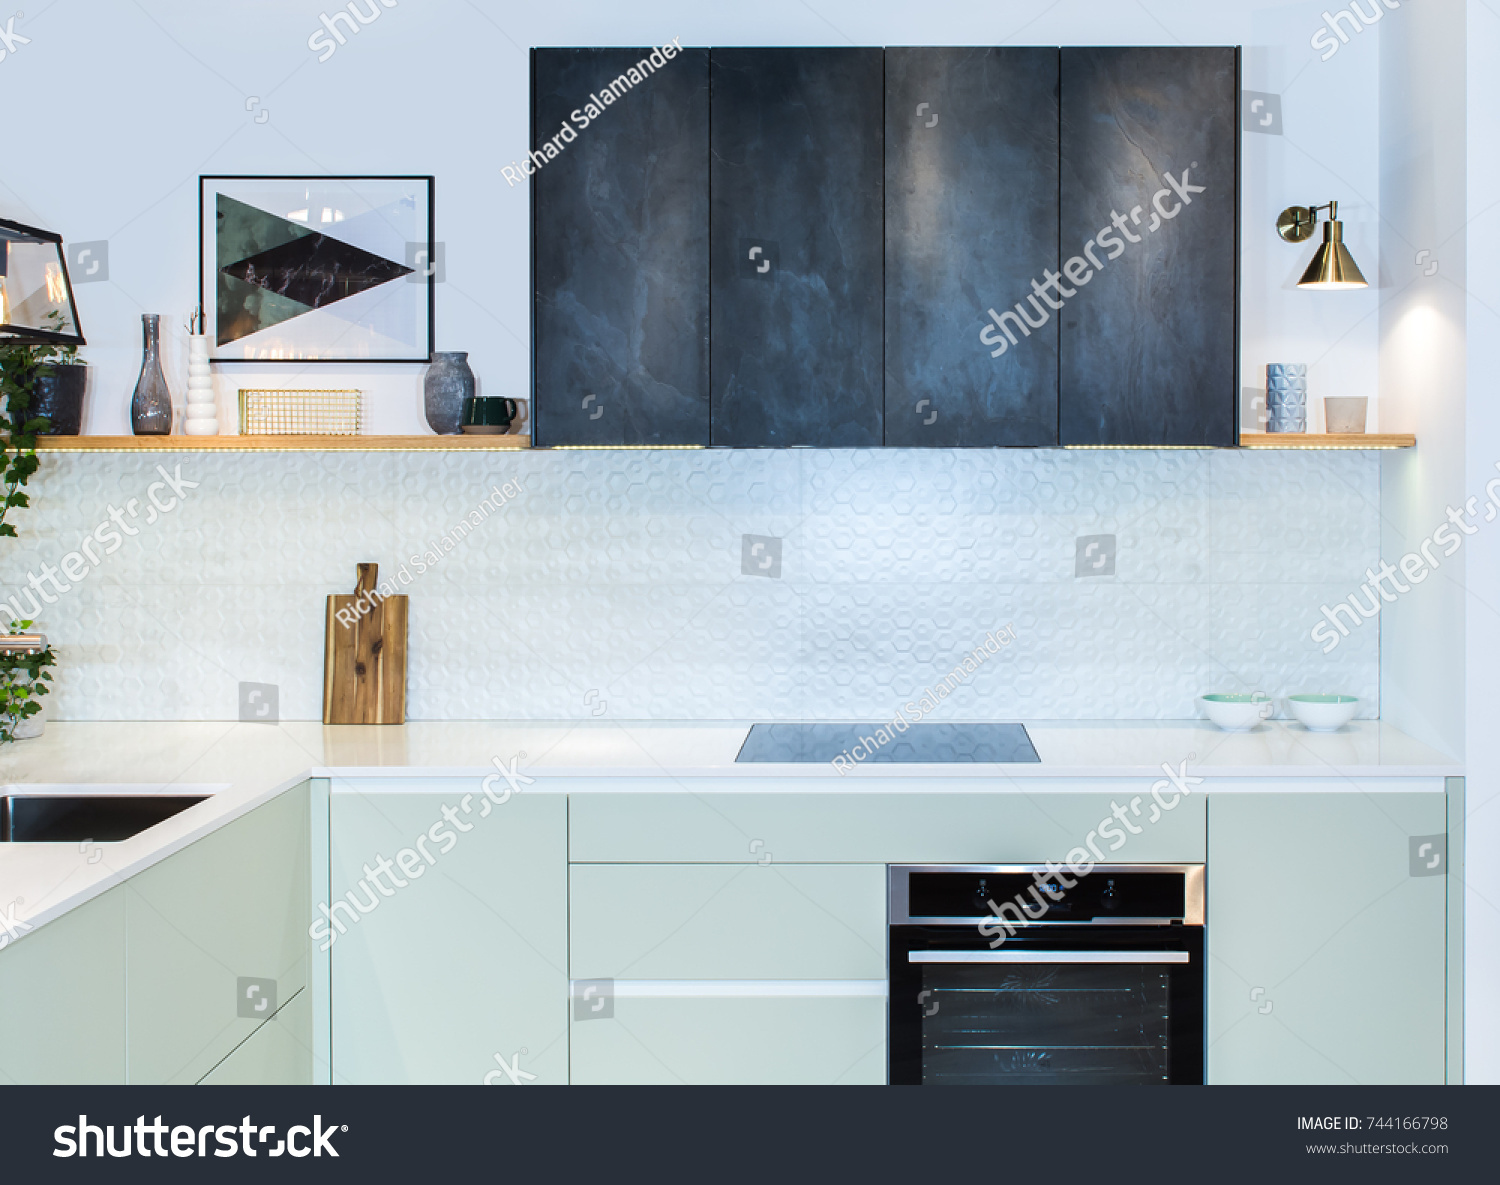 Modern home interior front view of modern kitchen in a light interior background picture european furniture design technologies project management